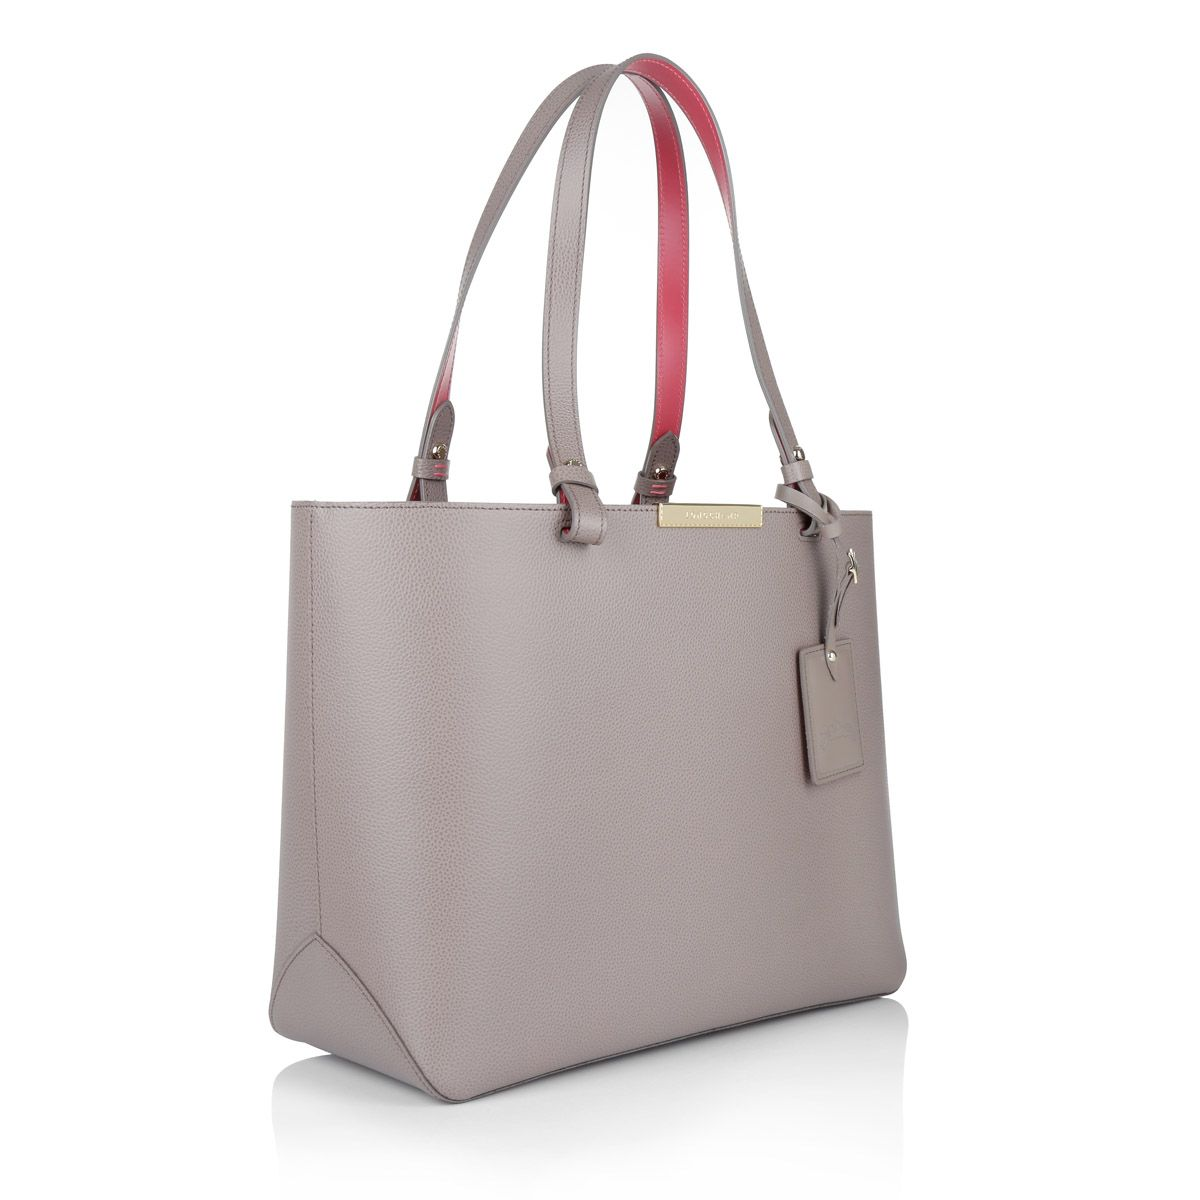 3200d13386f9 Longchamp Le Foulonné Shopping Bag M Grey Shopper Designer Taschen bei  Fashionette